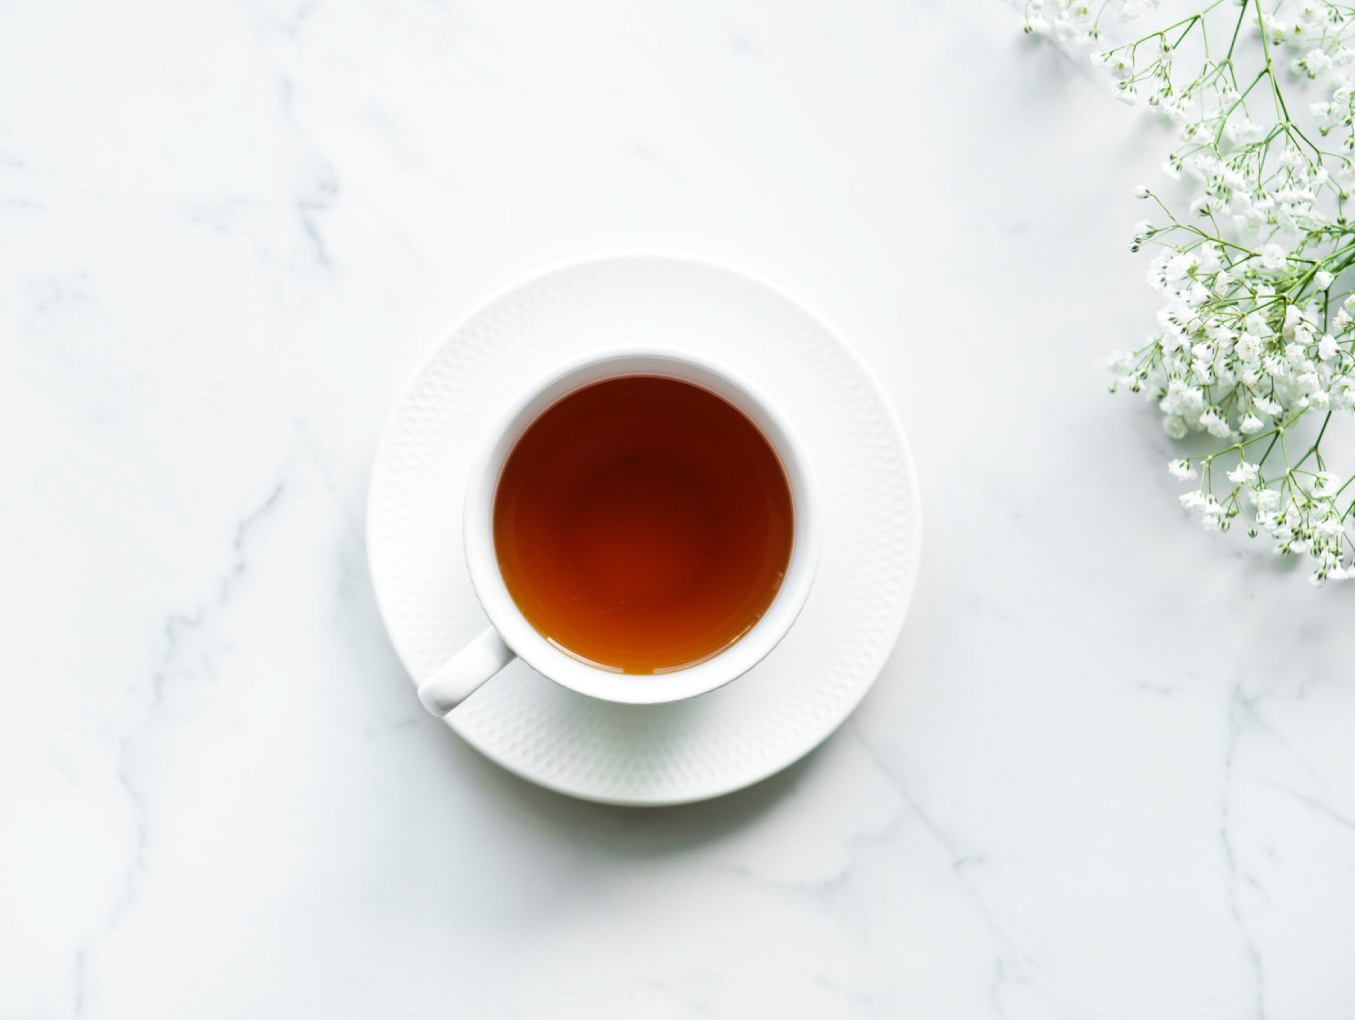 Do you take Tea with Plastic or Coffee with Pesticides?